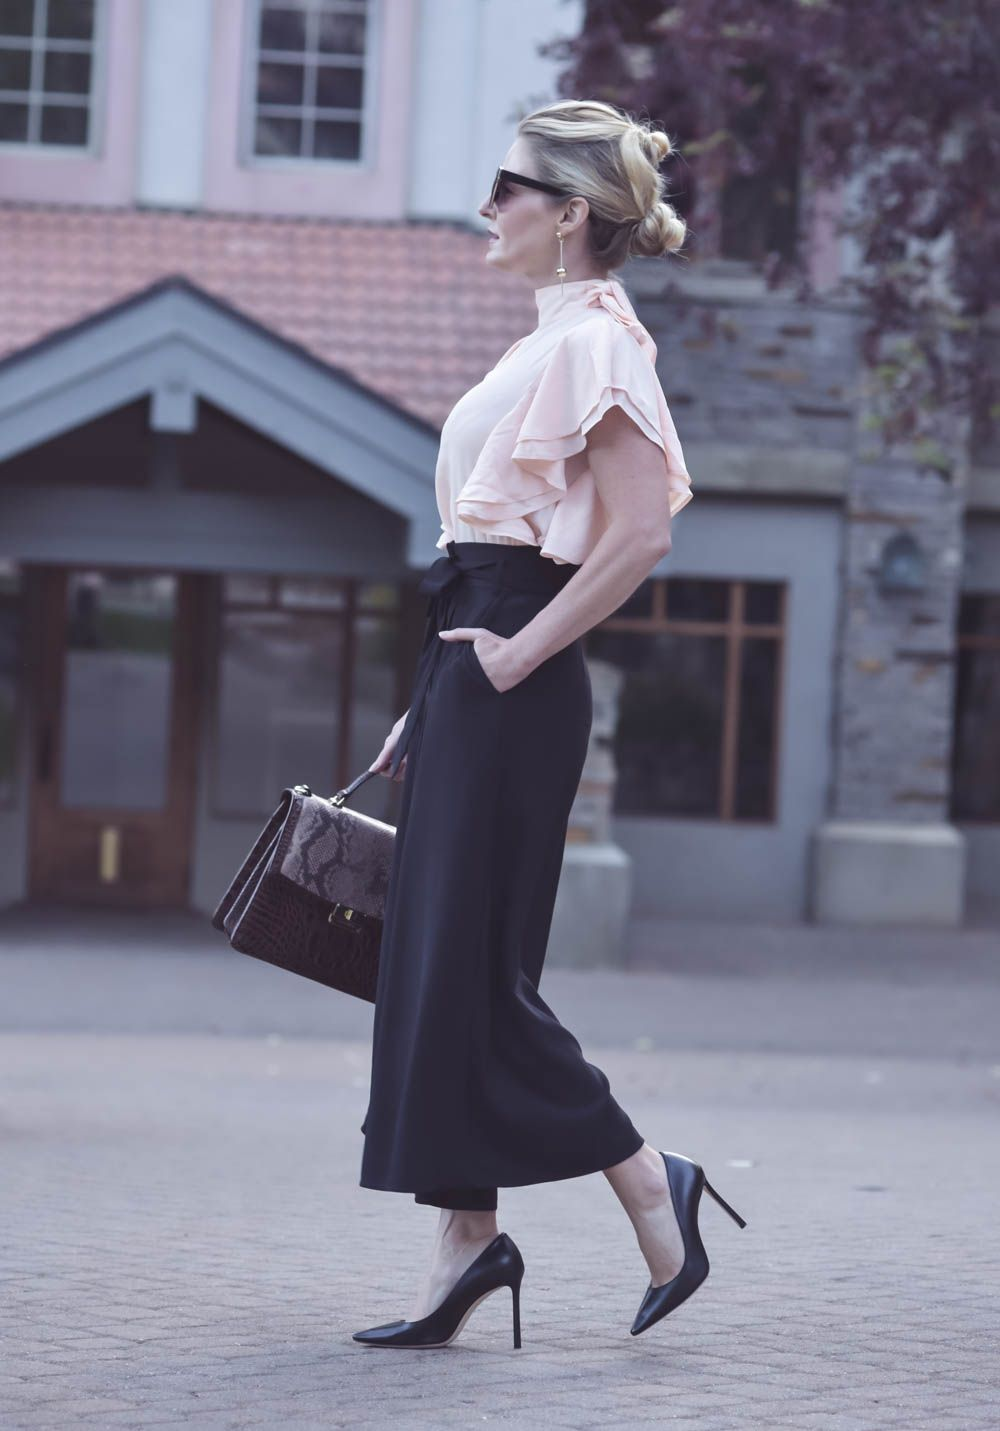 0df8a3675912 Three stylish and sophisticated business casual outfit ideas including  culottes